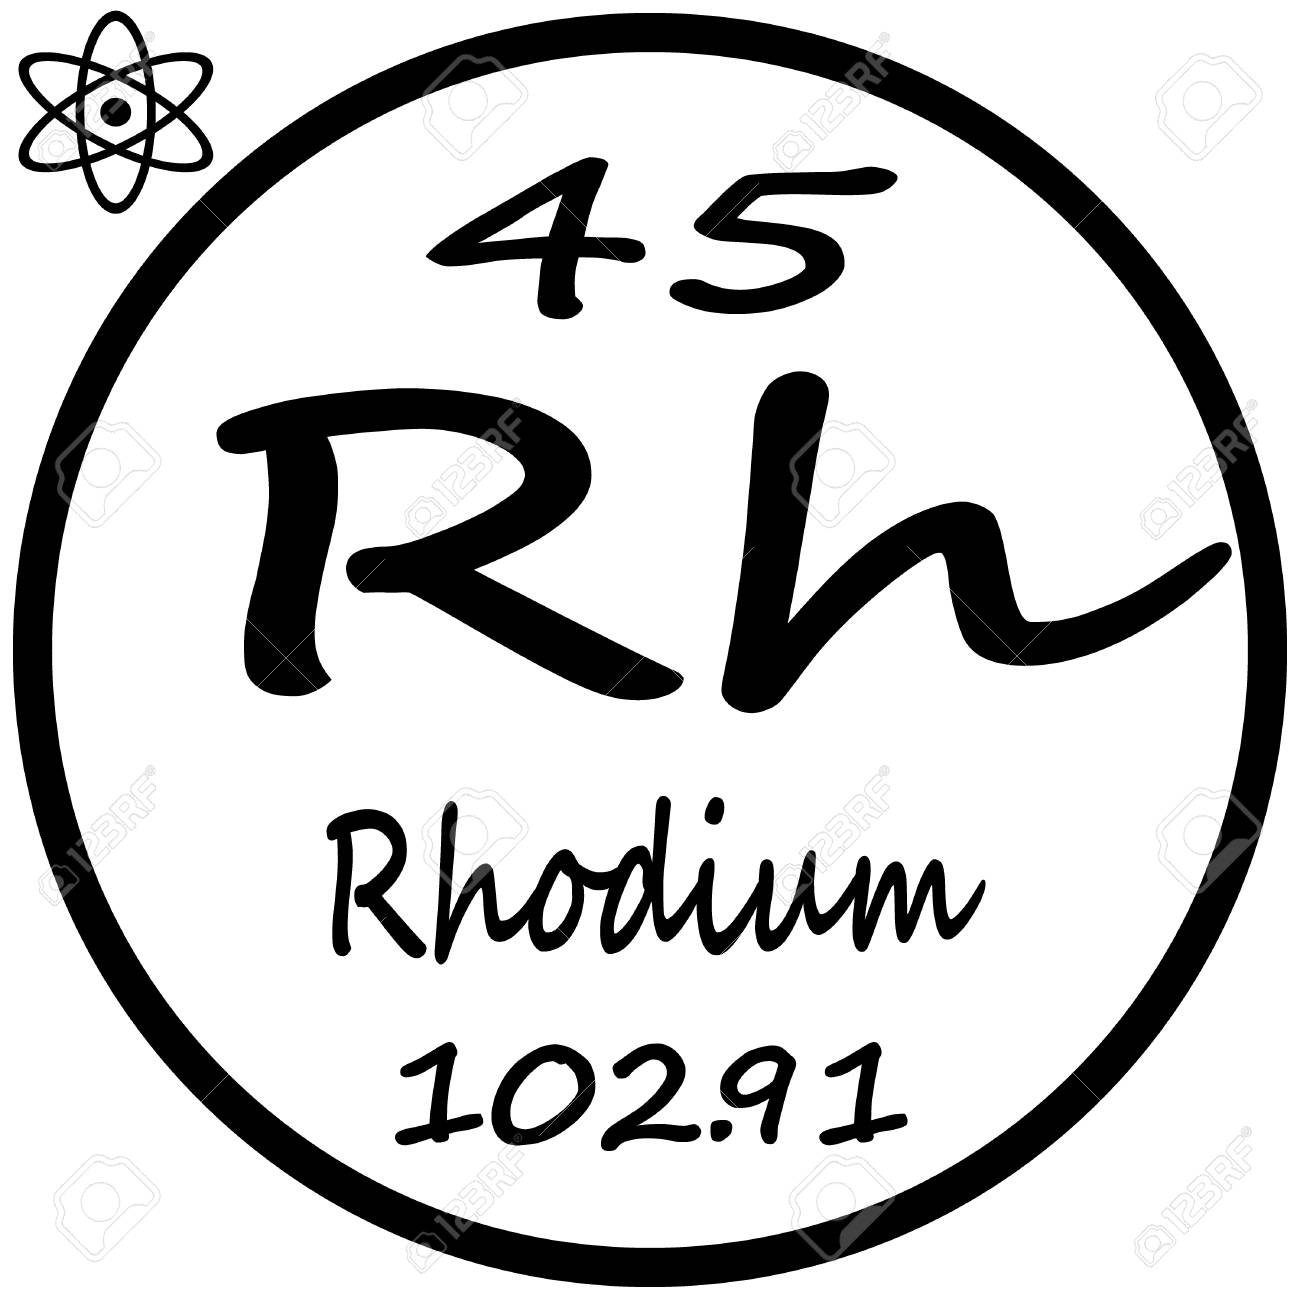 Periodic table of elements rhodium royalty free cliparts periodic table of elements rhodium stock vector 53482495 gamestrikefo Image collections